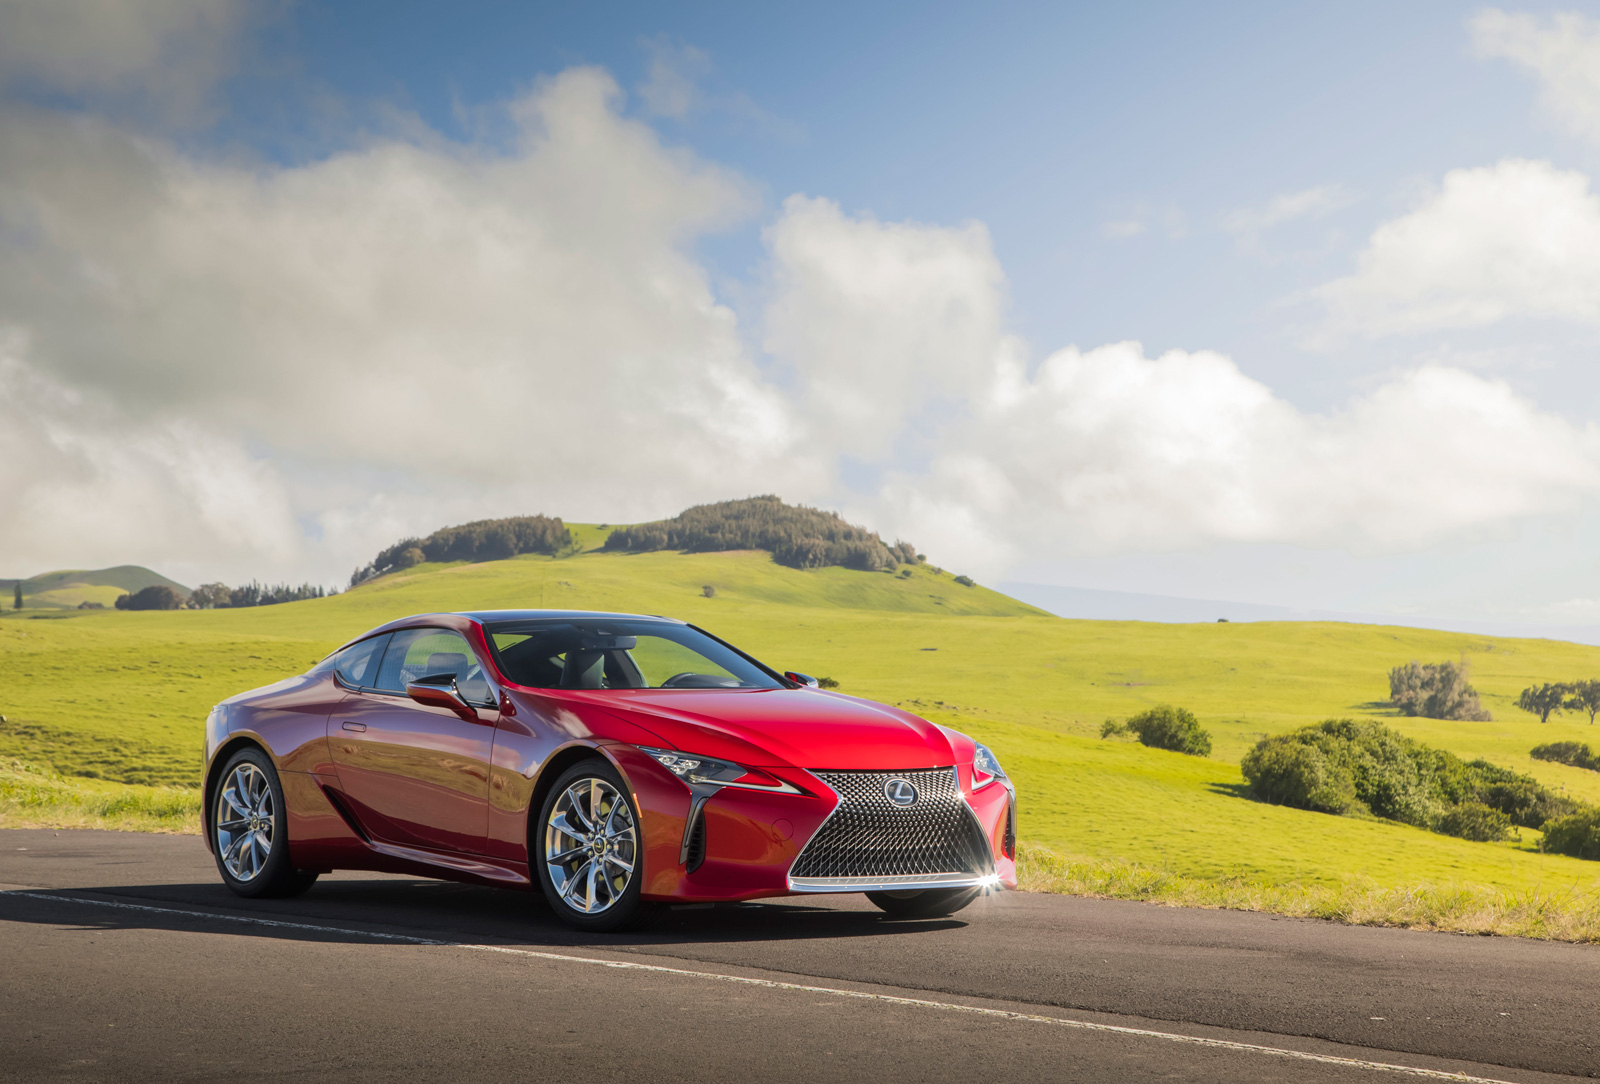 lexus reportedly expanding lc lineup with convertible  high